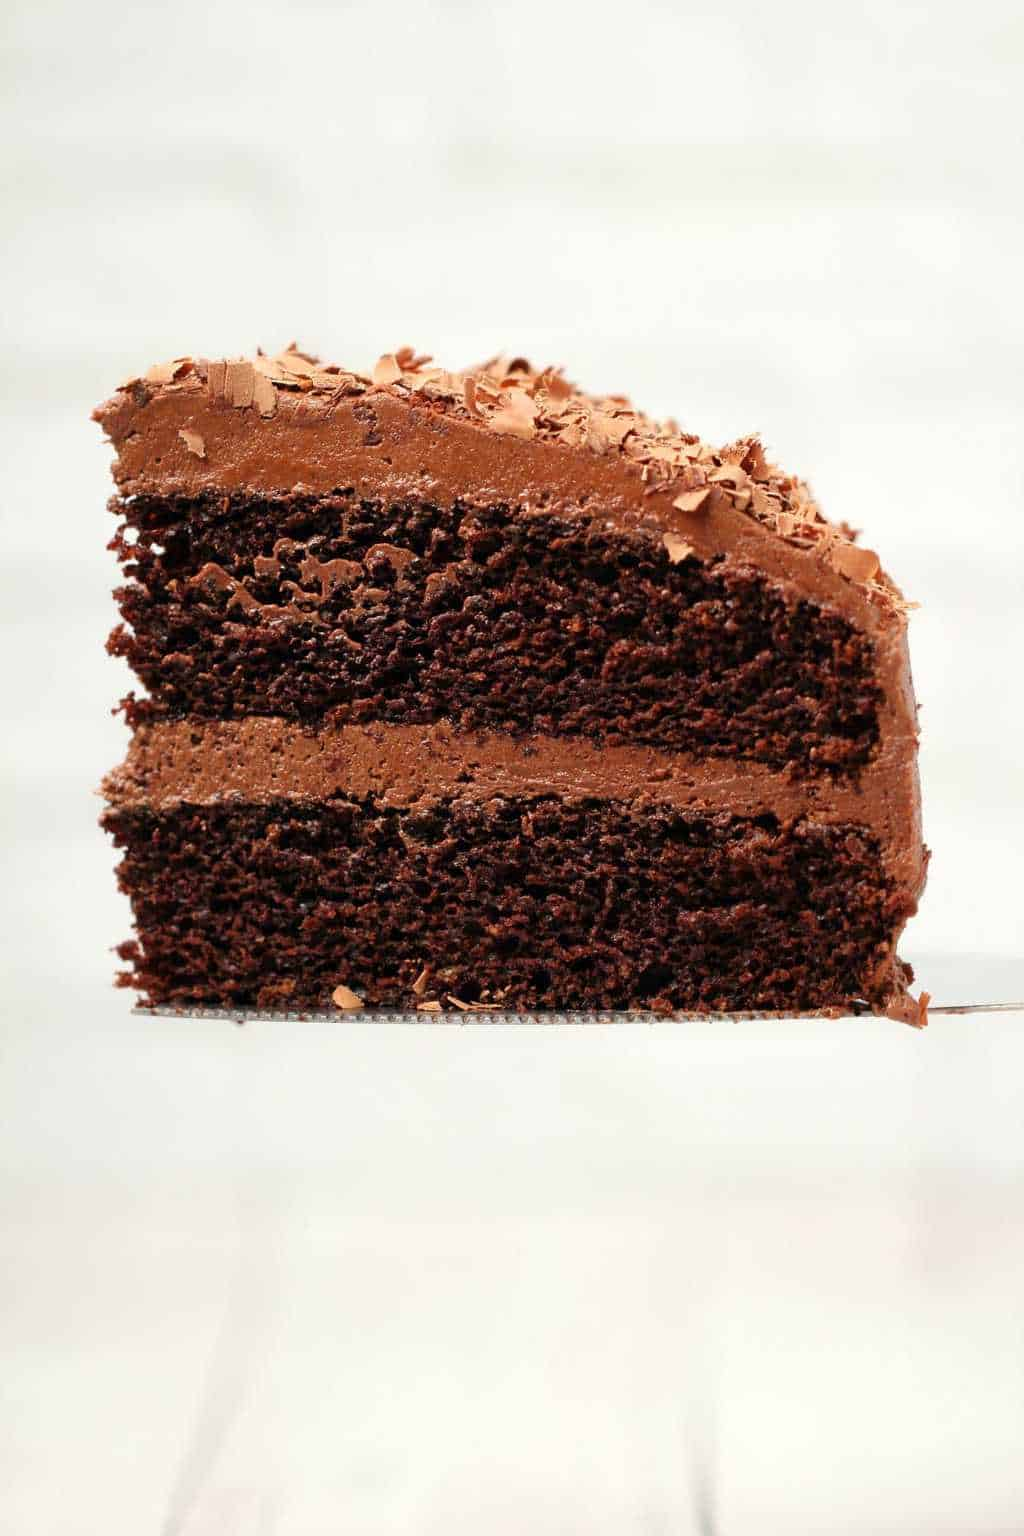 A slice of vegan chocolate cake on a cake lifter.